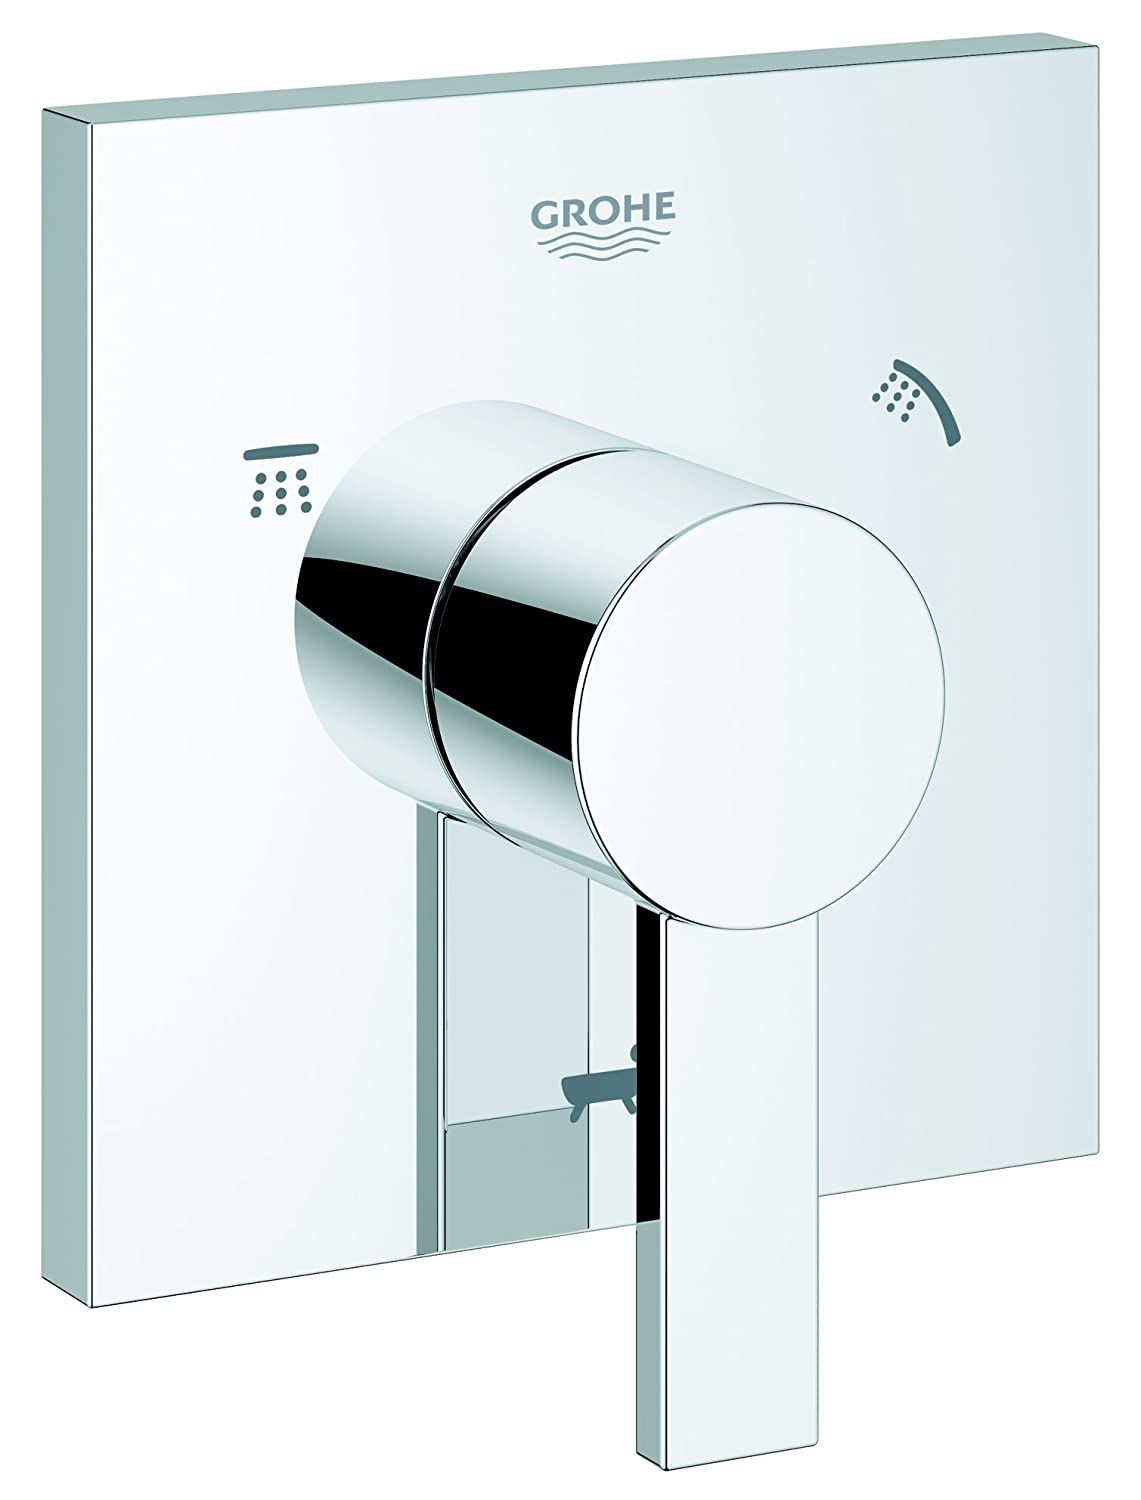 Import Allemagne GROHE Inverseur 5 Voies Allure 19590000